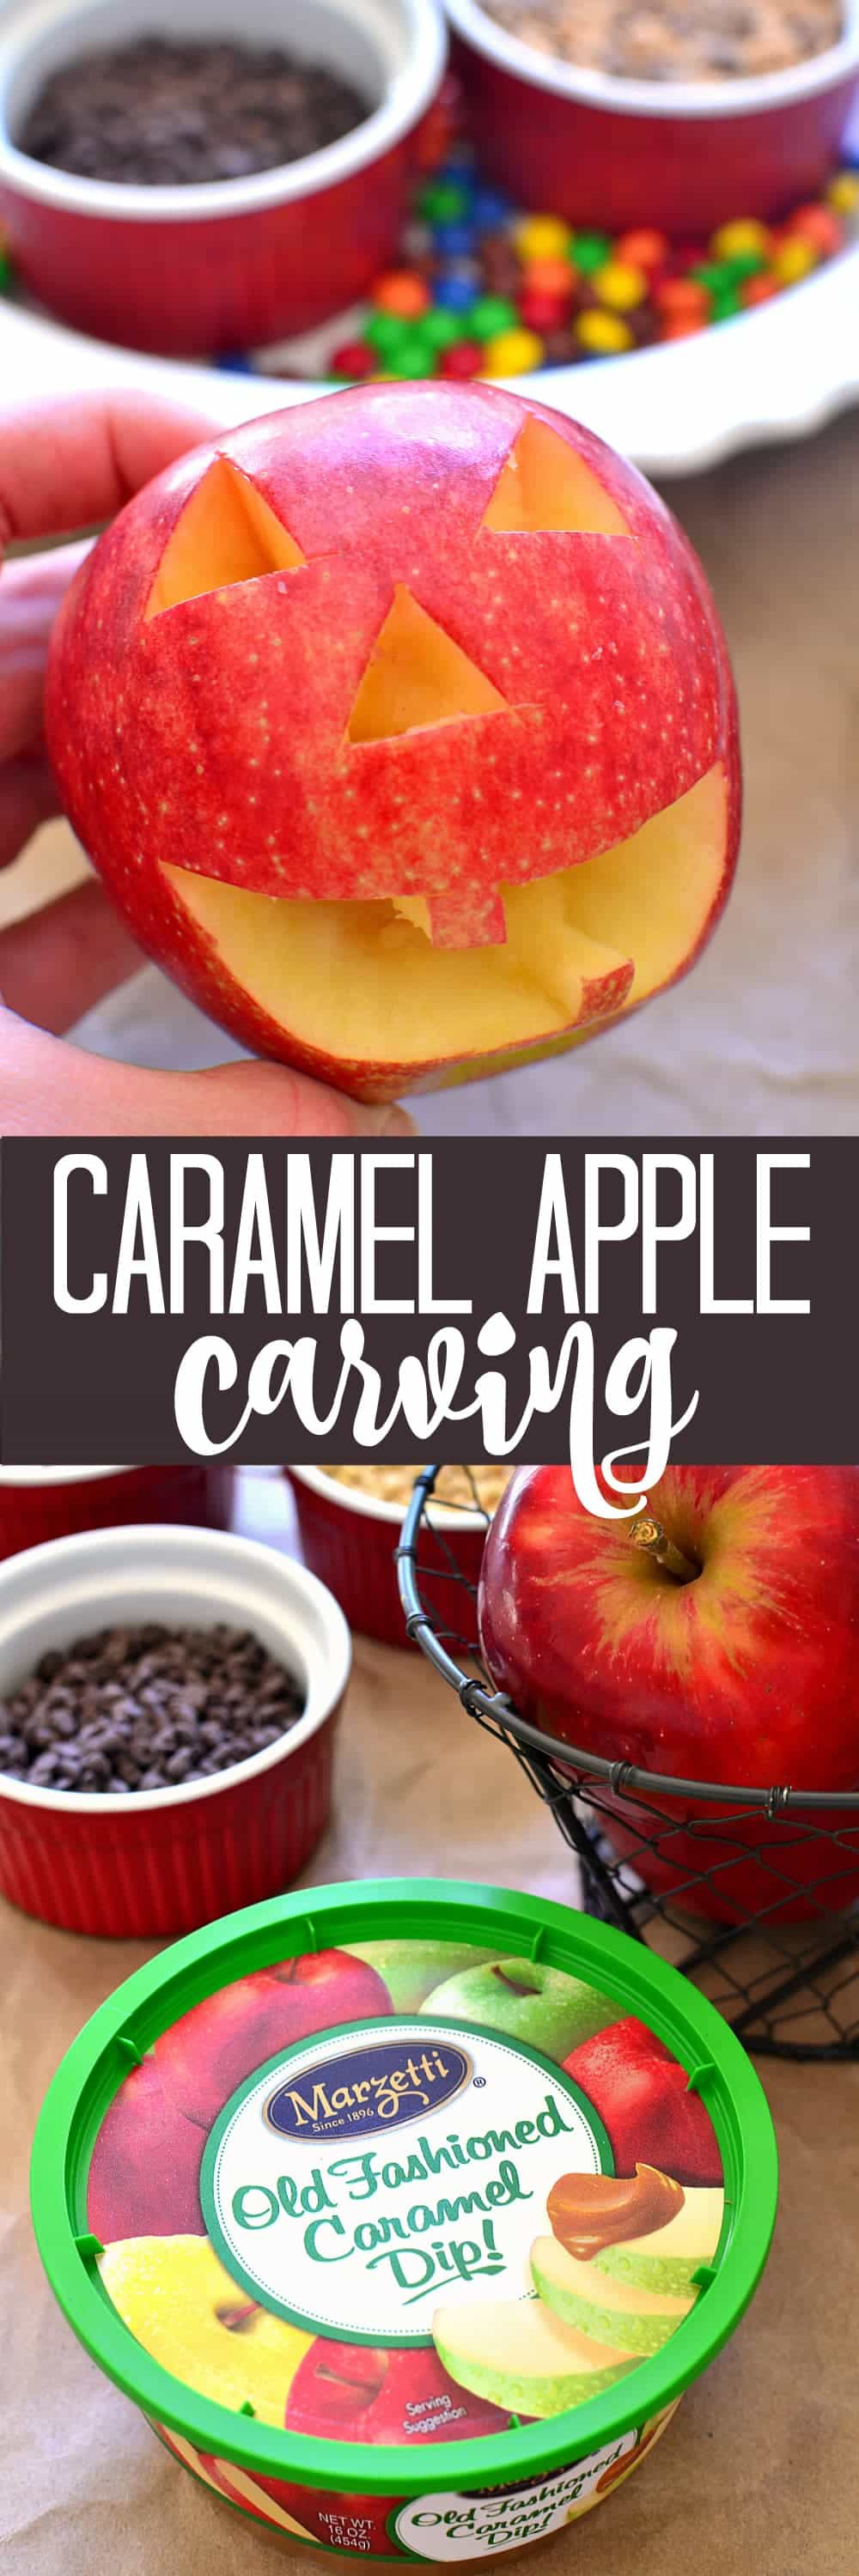 Caramel Apple Carving - a fun new fall tradition that's easy for kids and SO delicious!